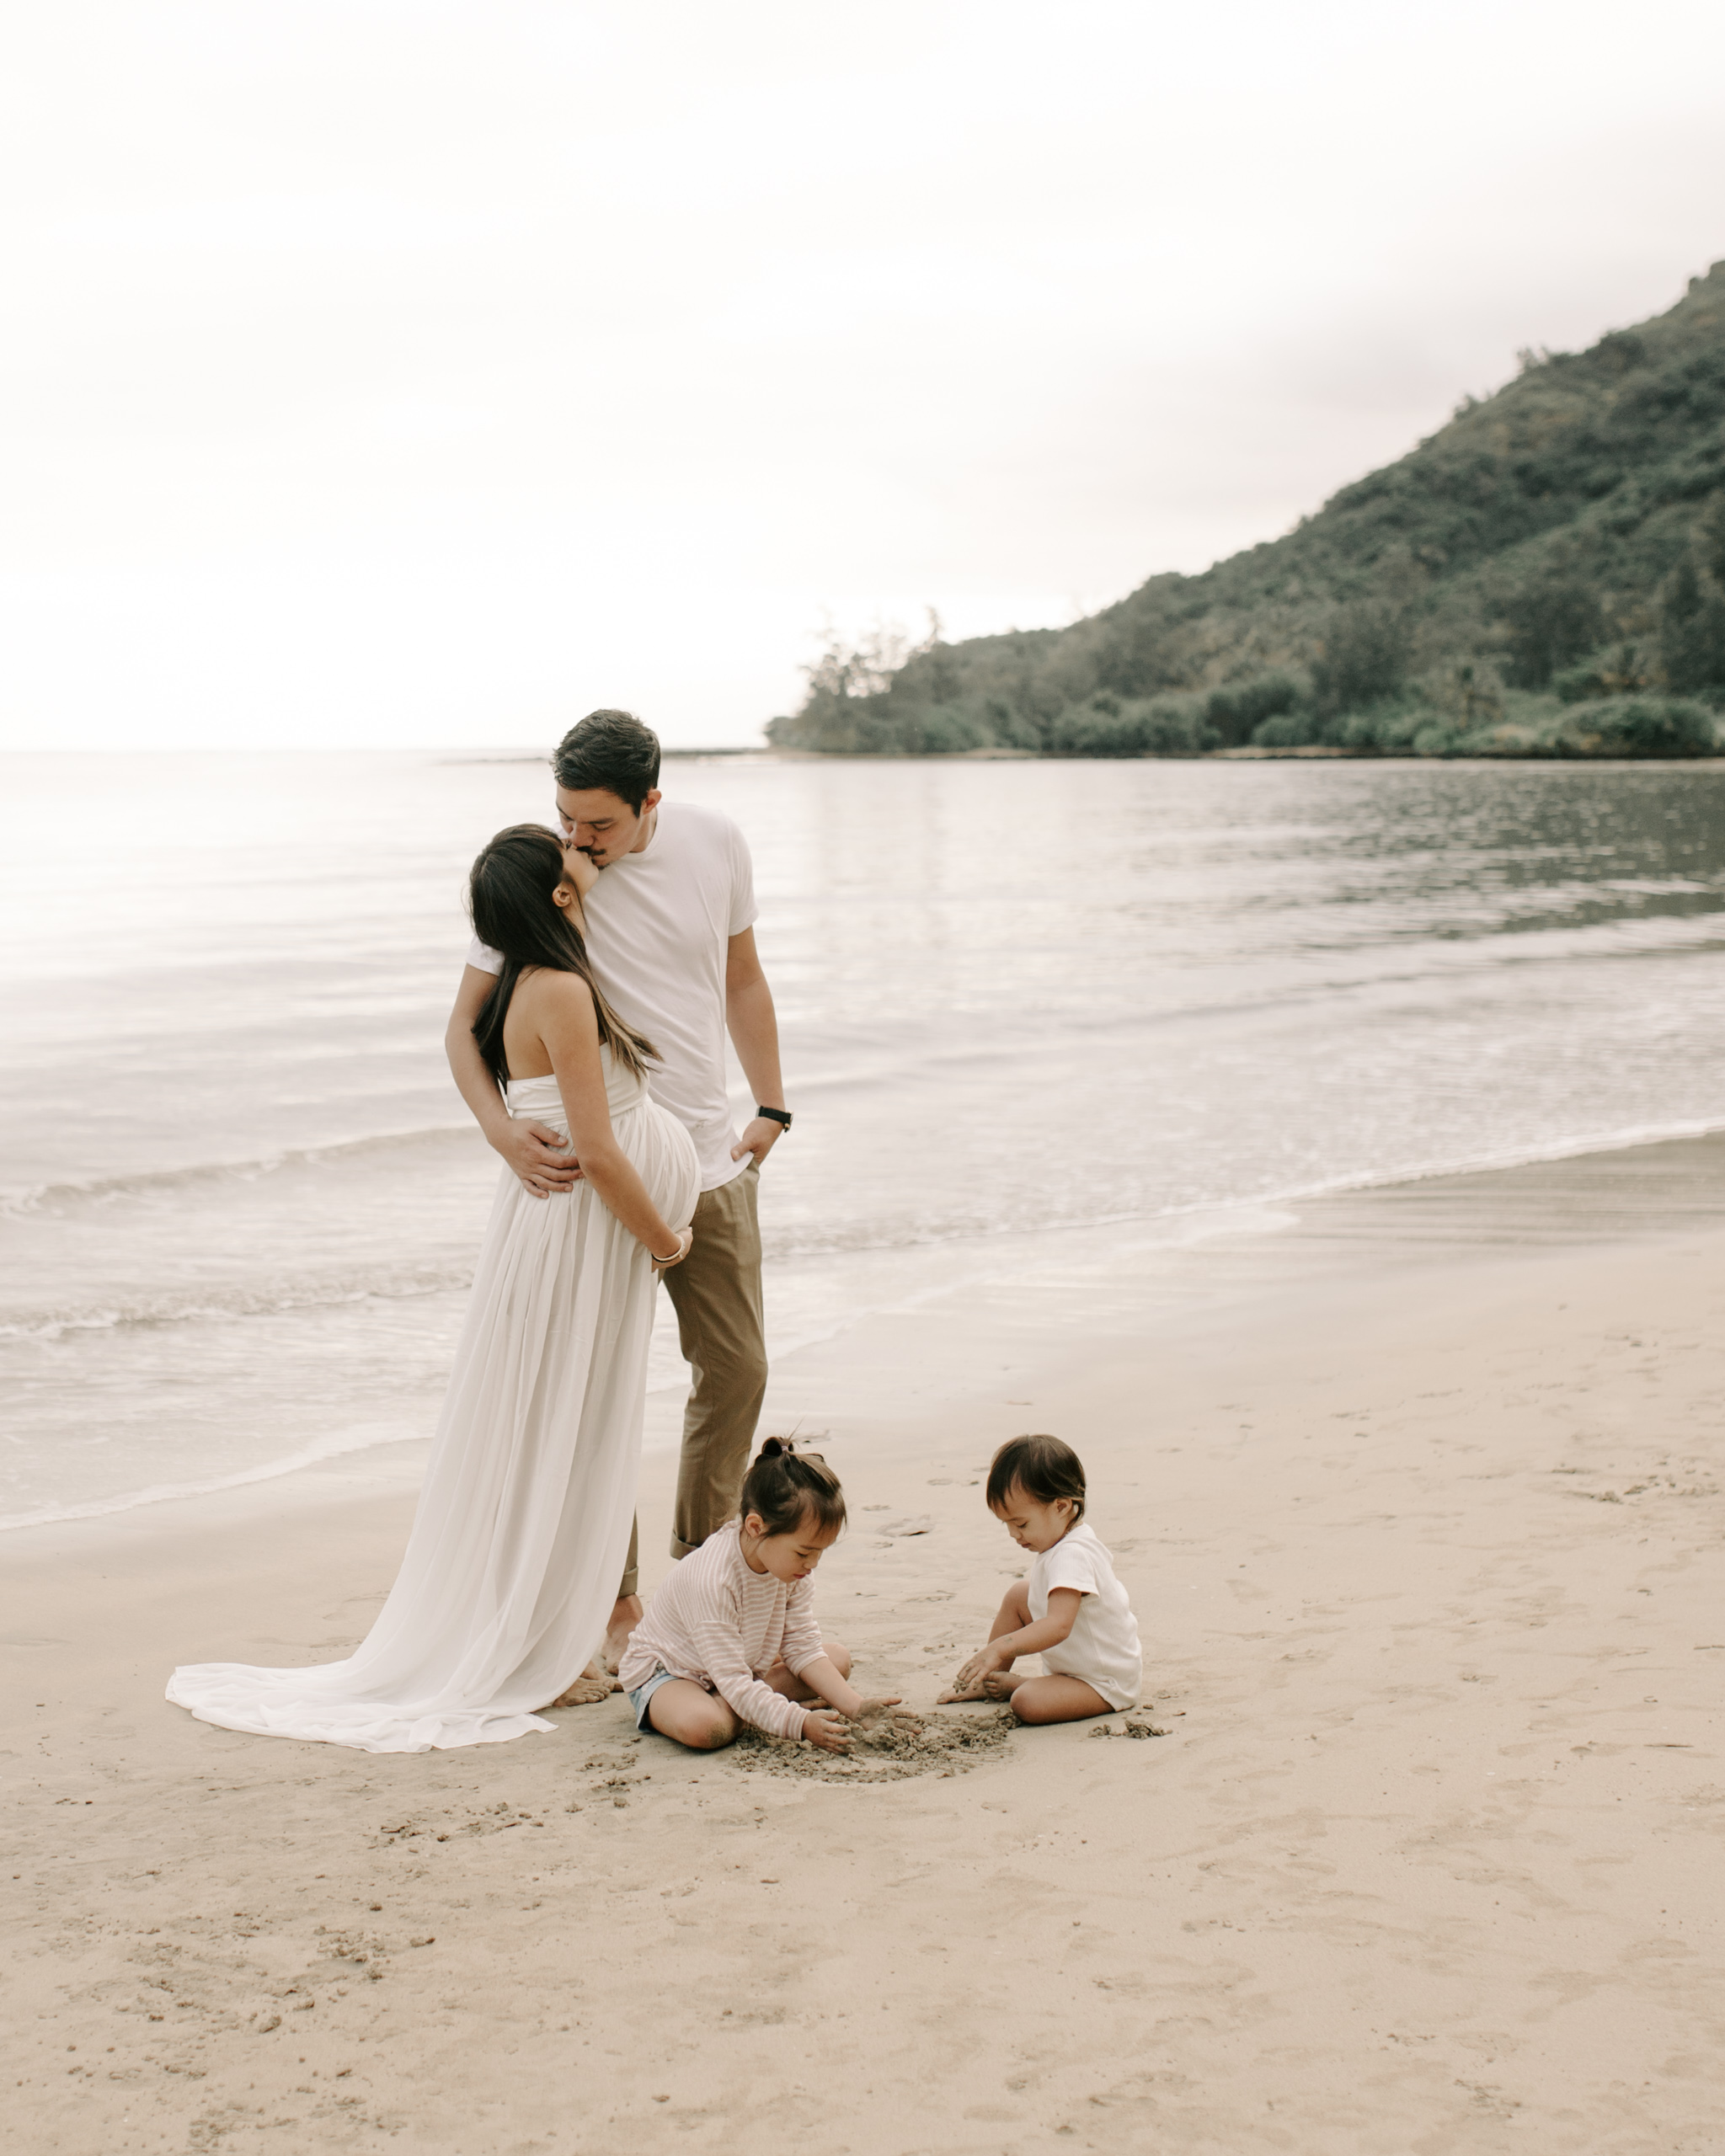 Beautiful and authentic family beach photo session at Kahana Bay by Hawaii family photographer Desiree Leilani